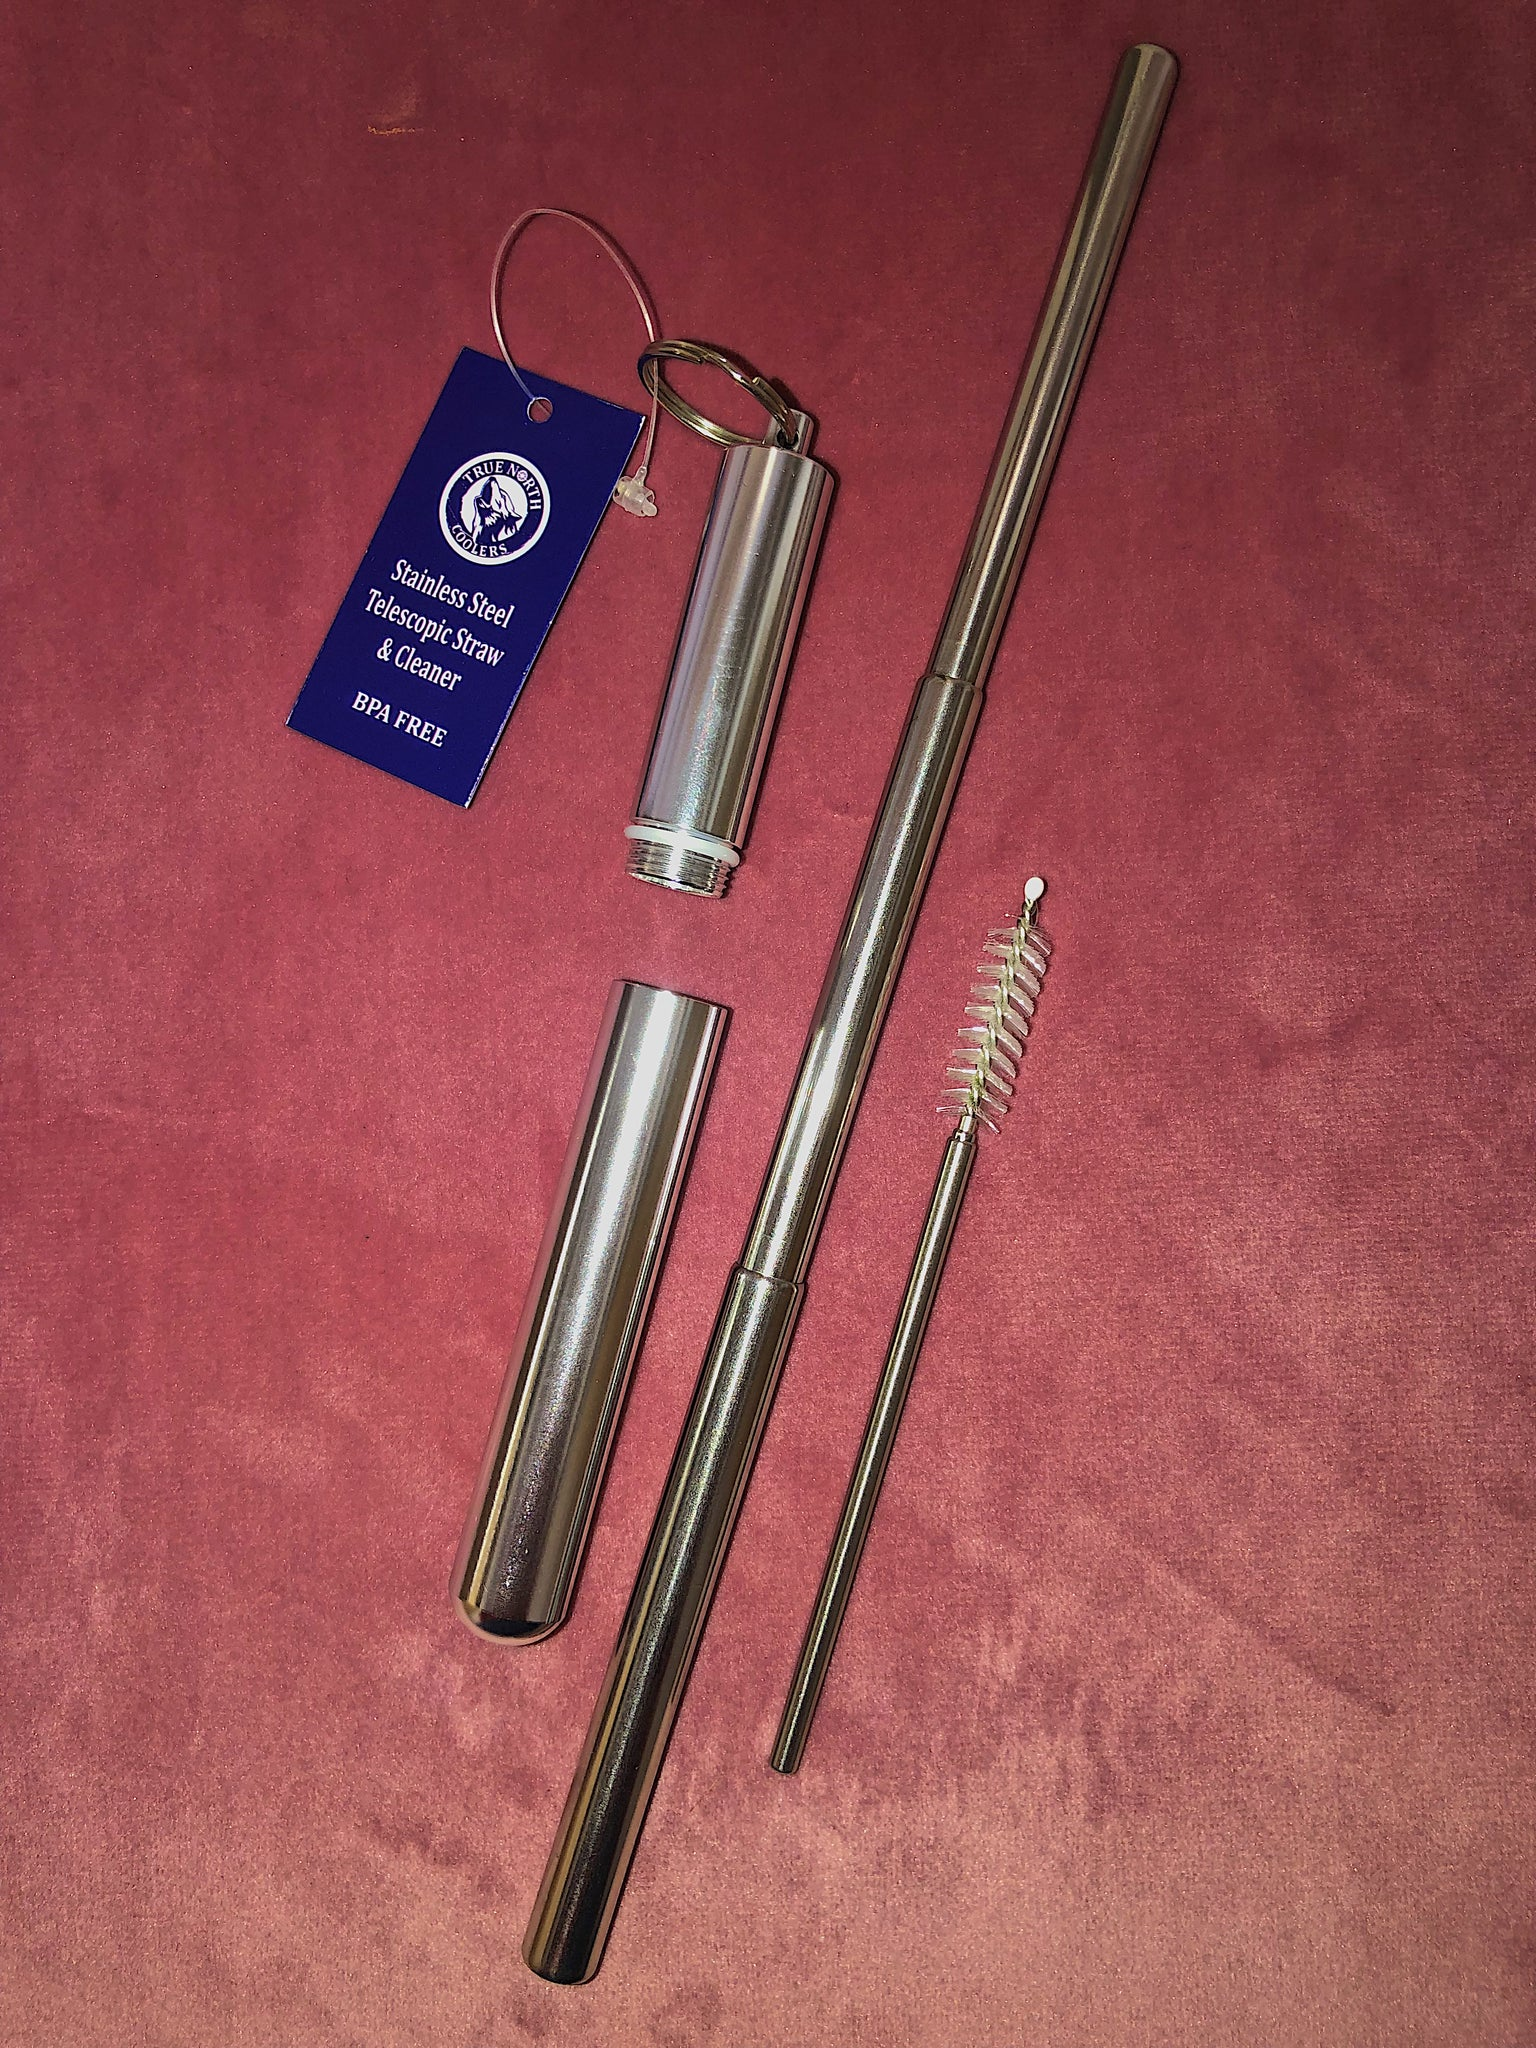 Stainless Steel Telescopic Straw & Cleaner